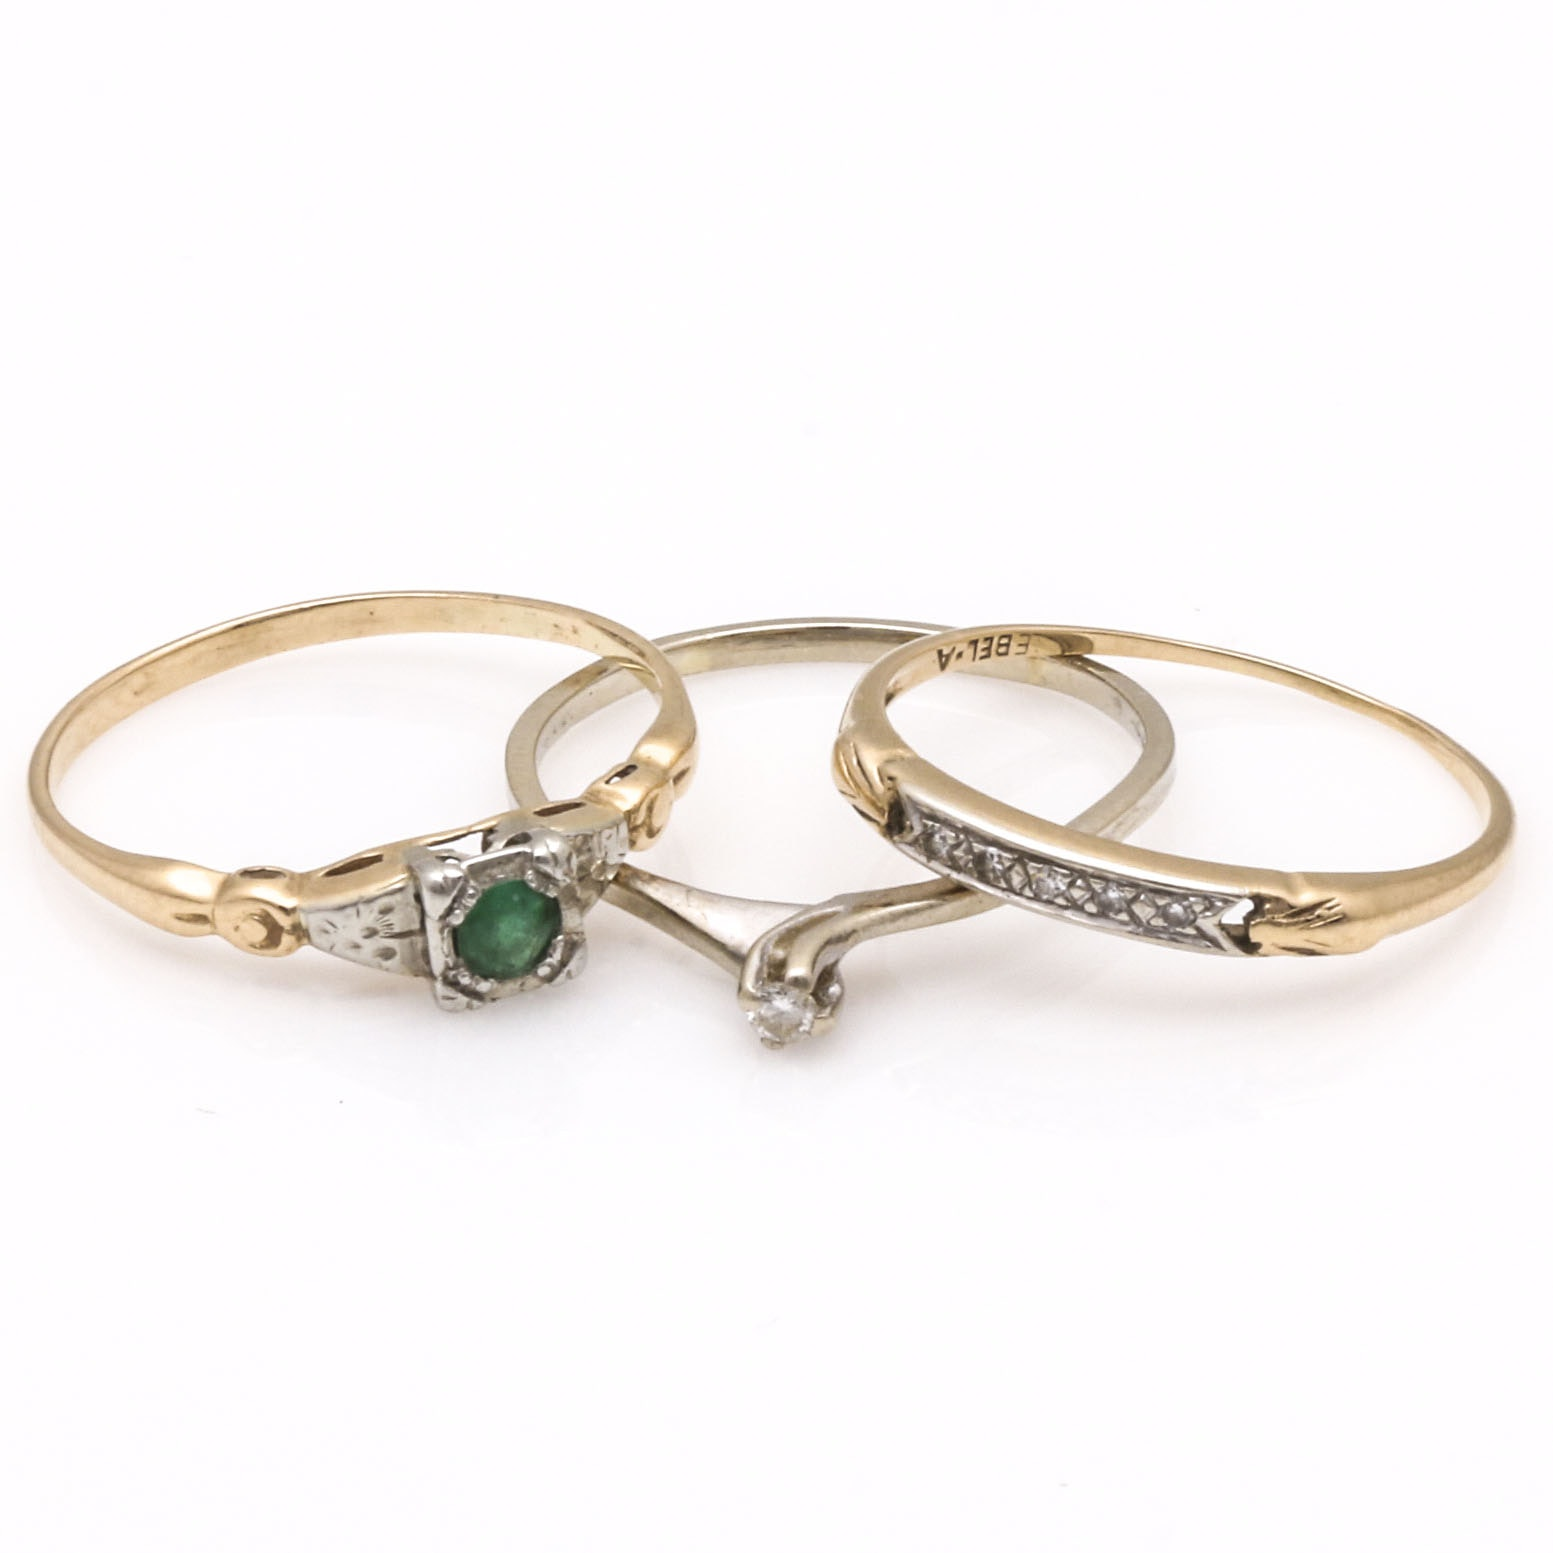 Three 14K Gold Diamond and Emerald Rings